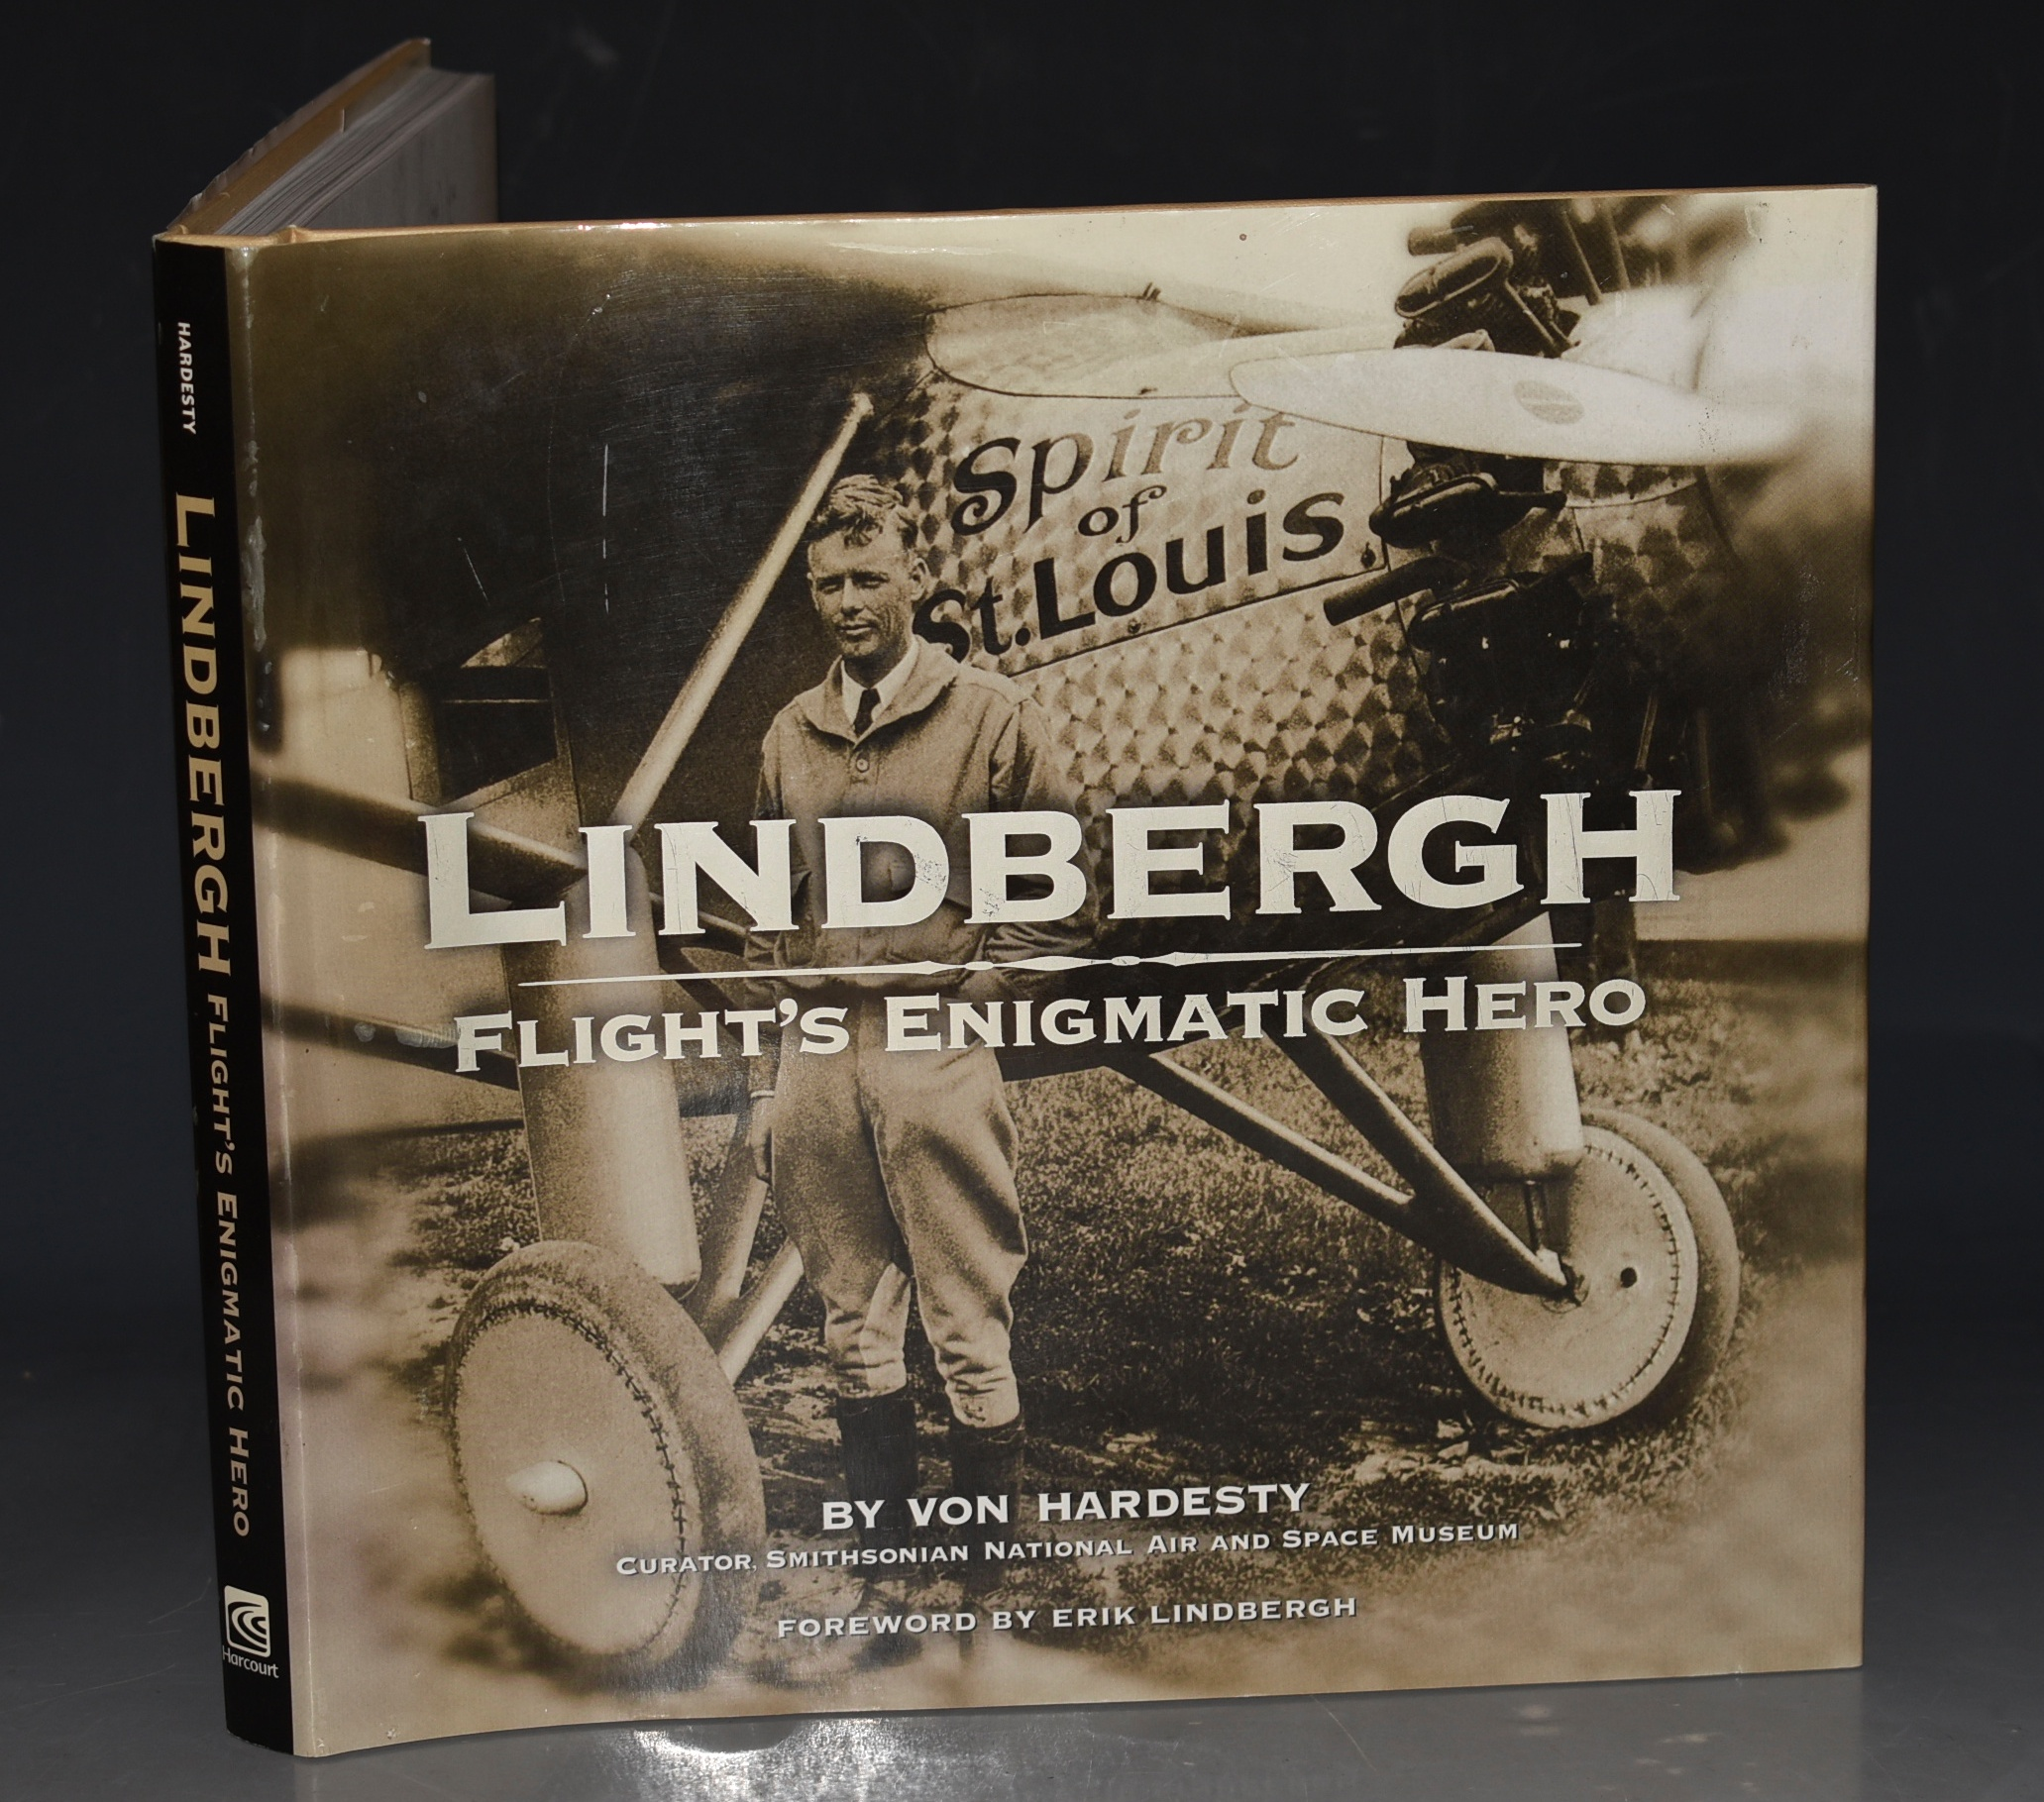 Image for Lindbergh, Flight's Enigmatic Hero Foreword by Erik Lindbergh.